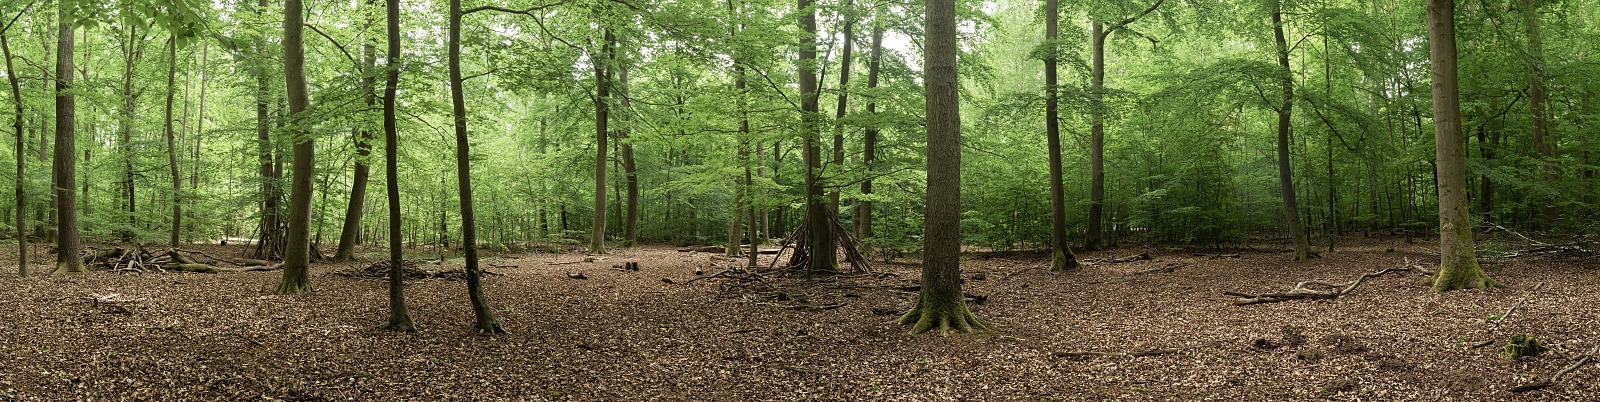 Spring forest panorama